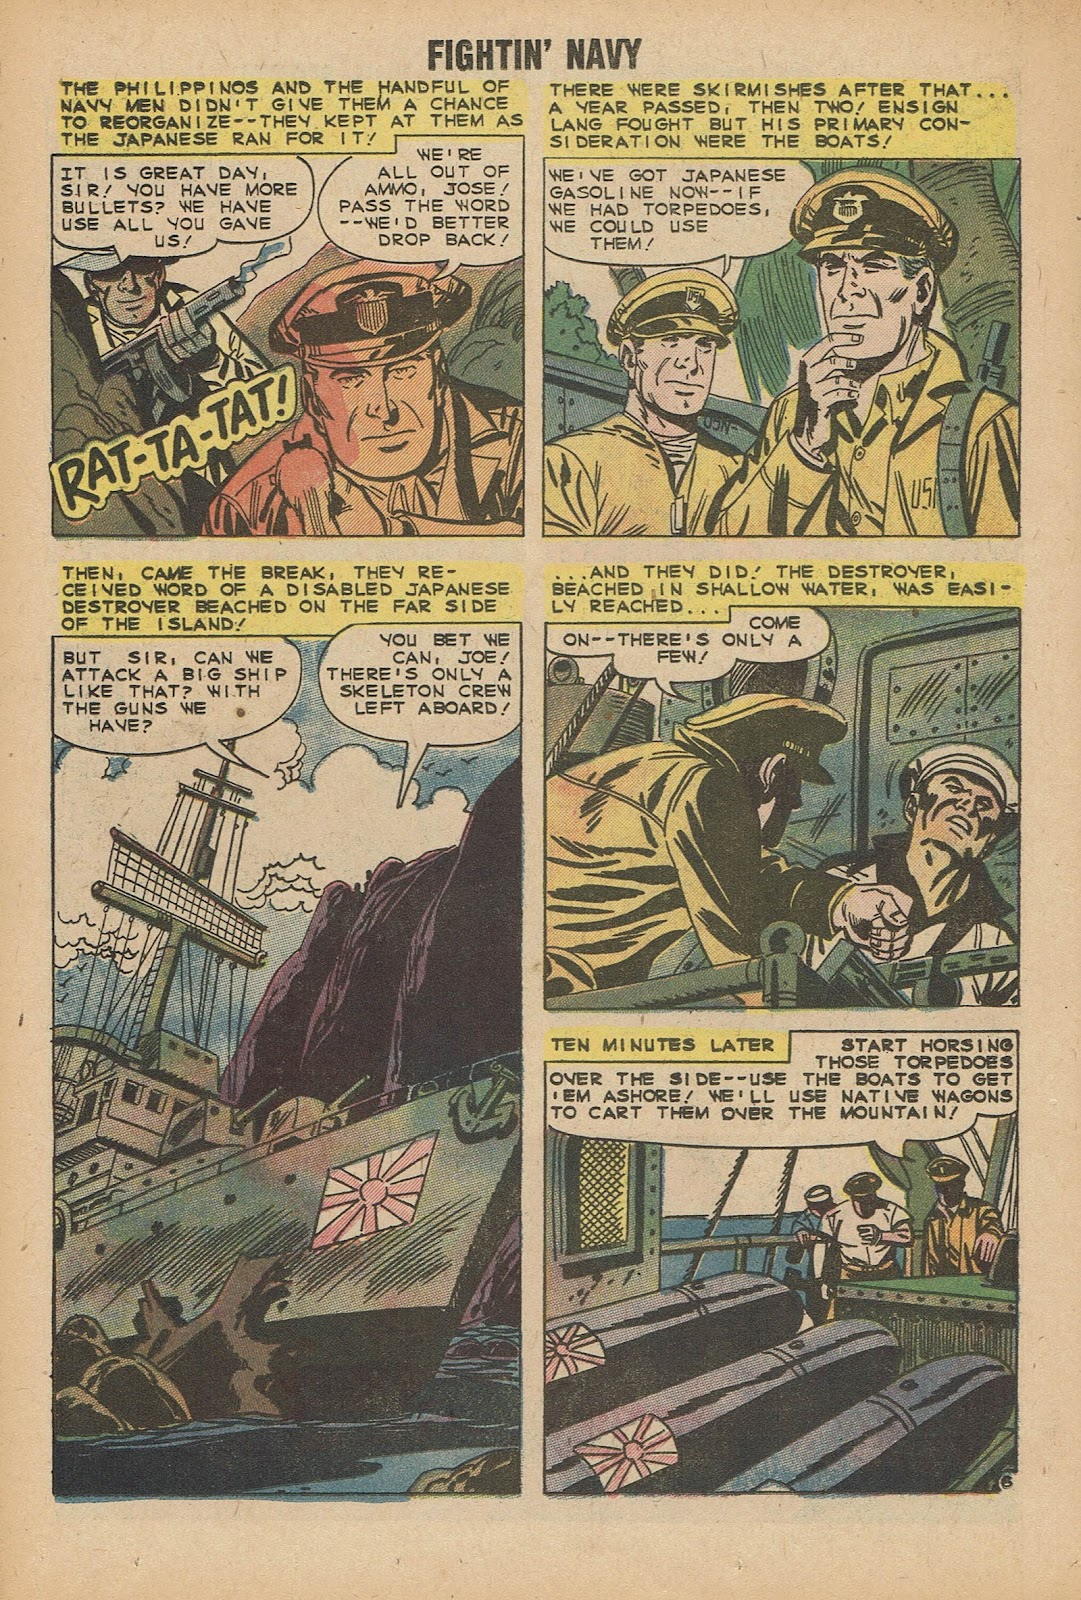 Read online Fightin' Navy comic -  Issue #92 - 18